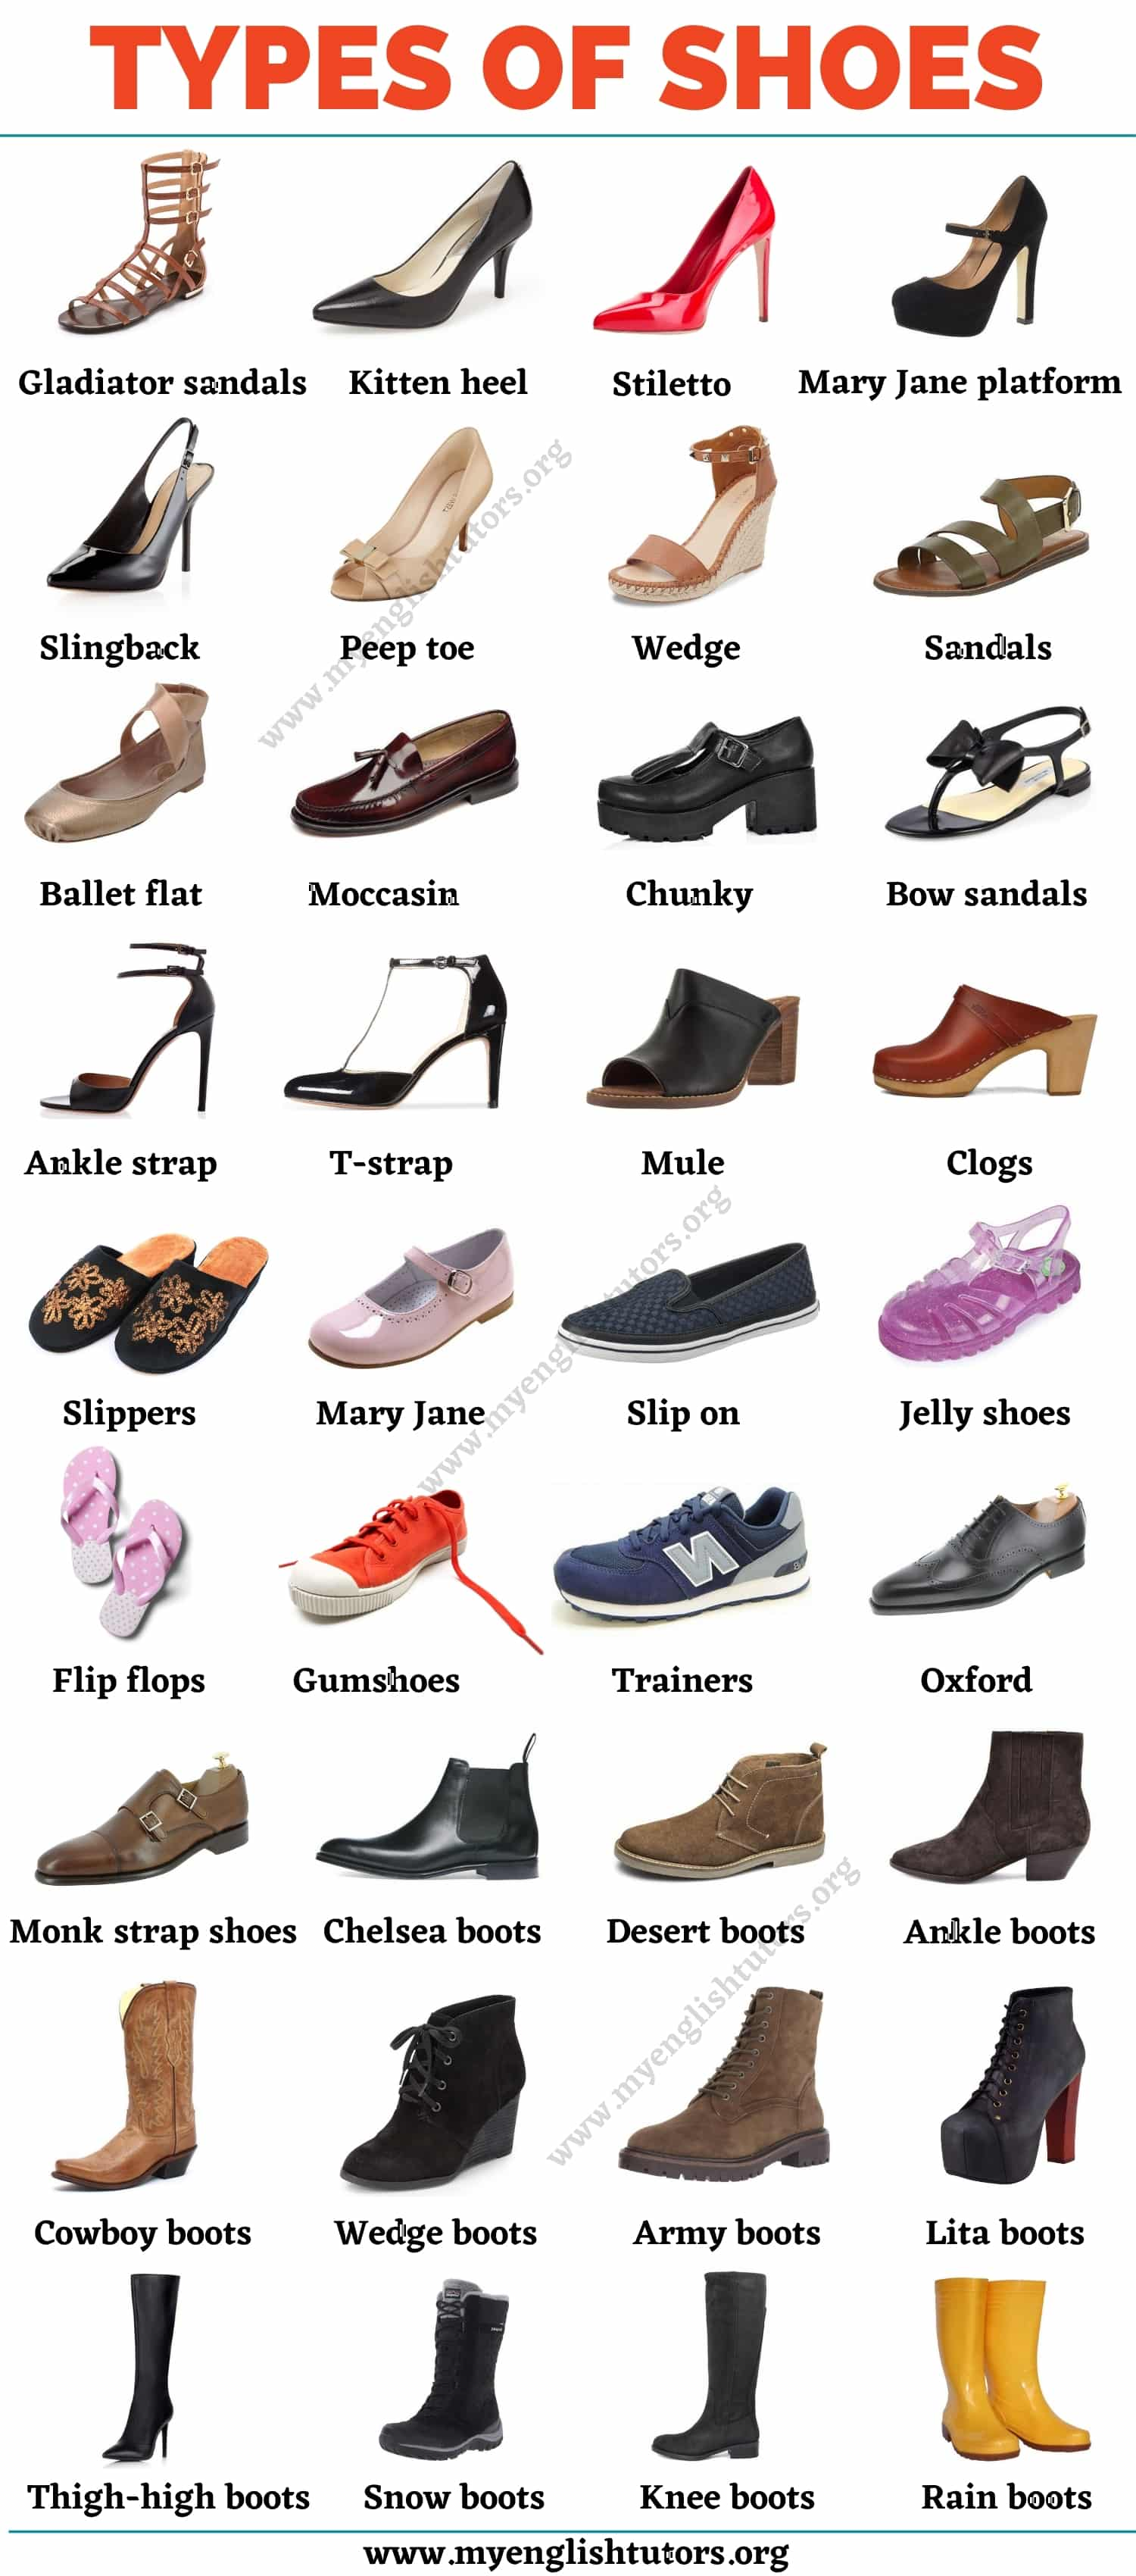 Types of Shoes: List of 35+ Shoe Styles with the Picture!